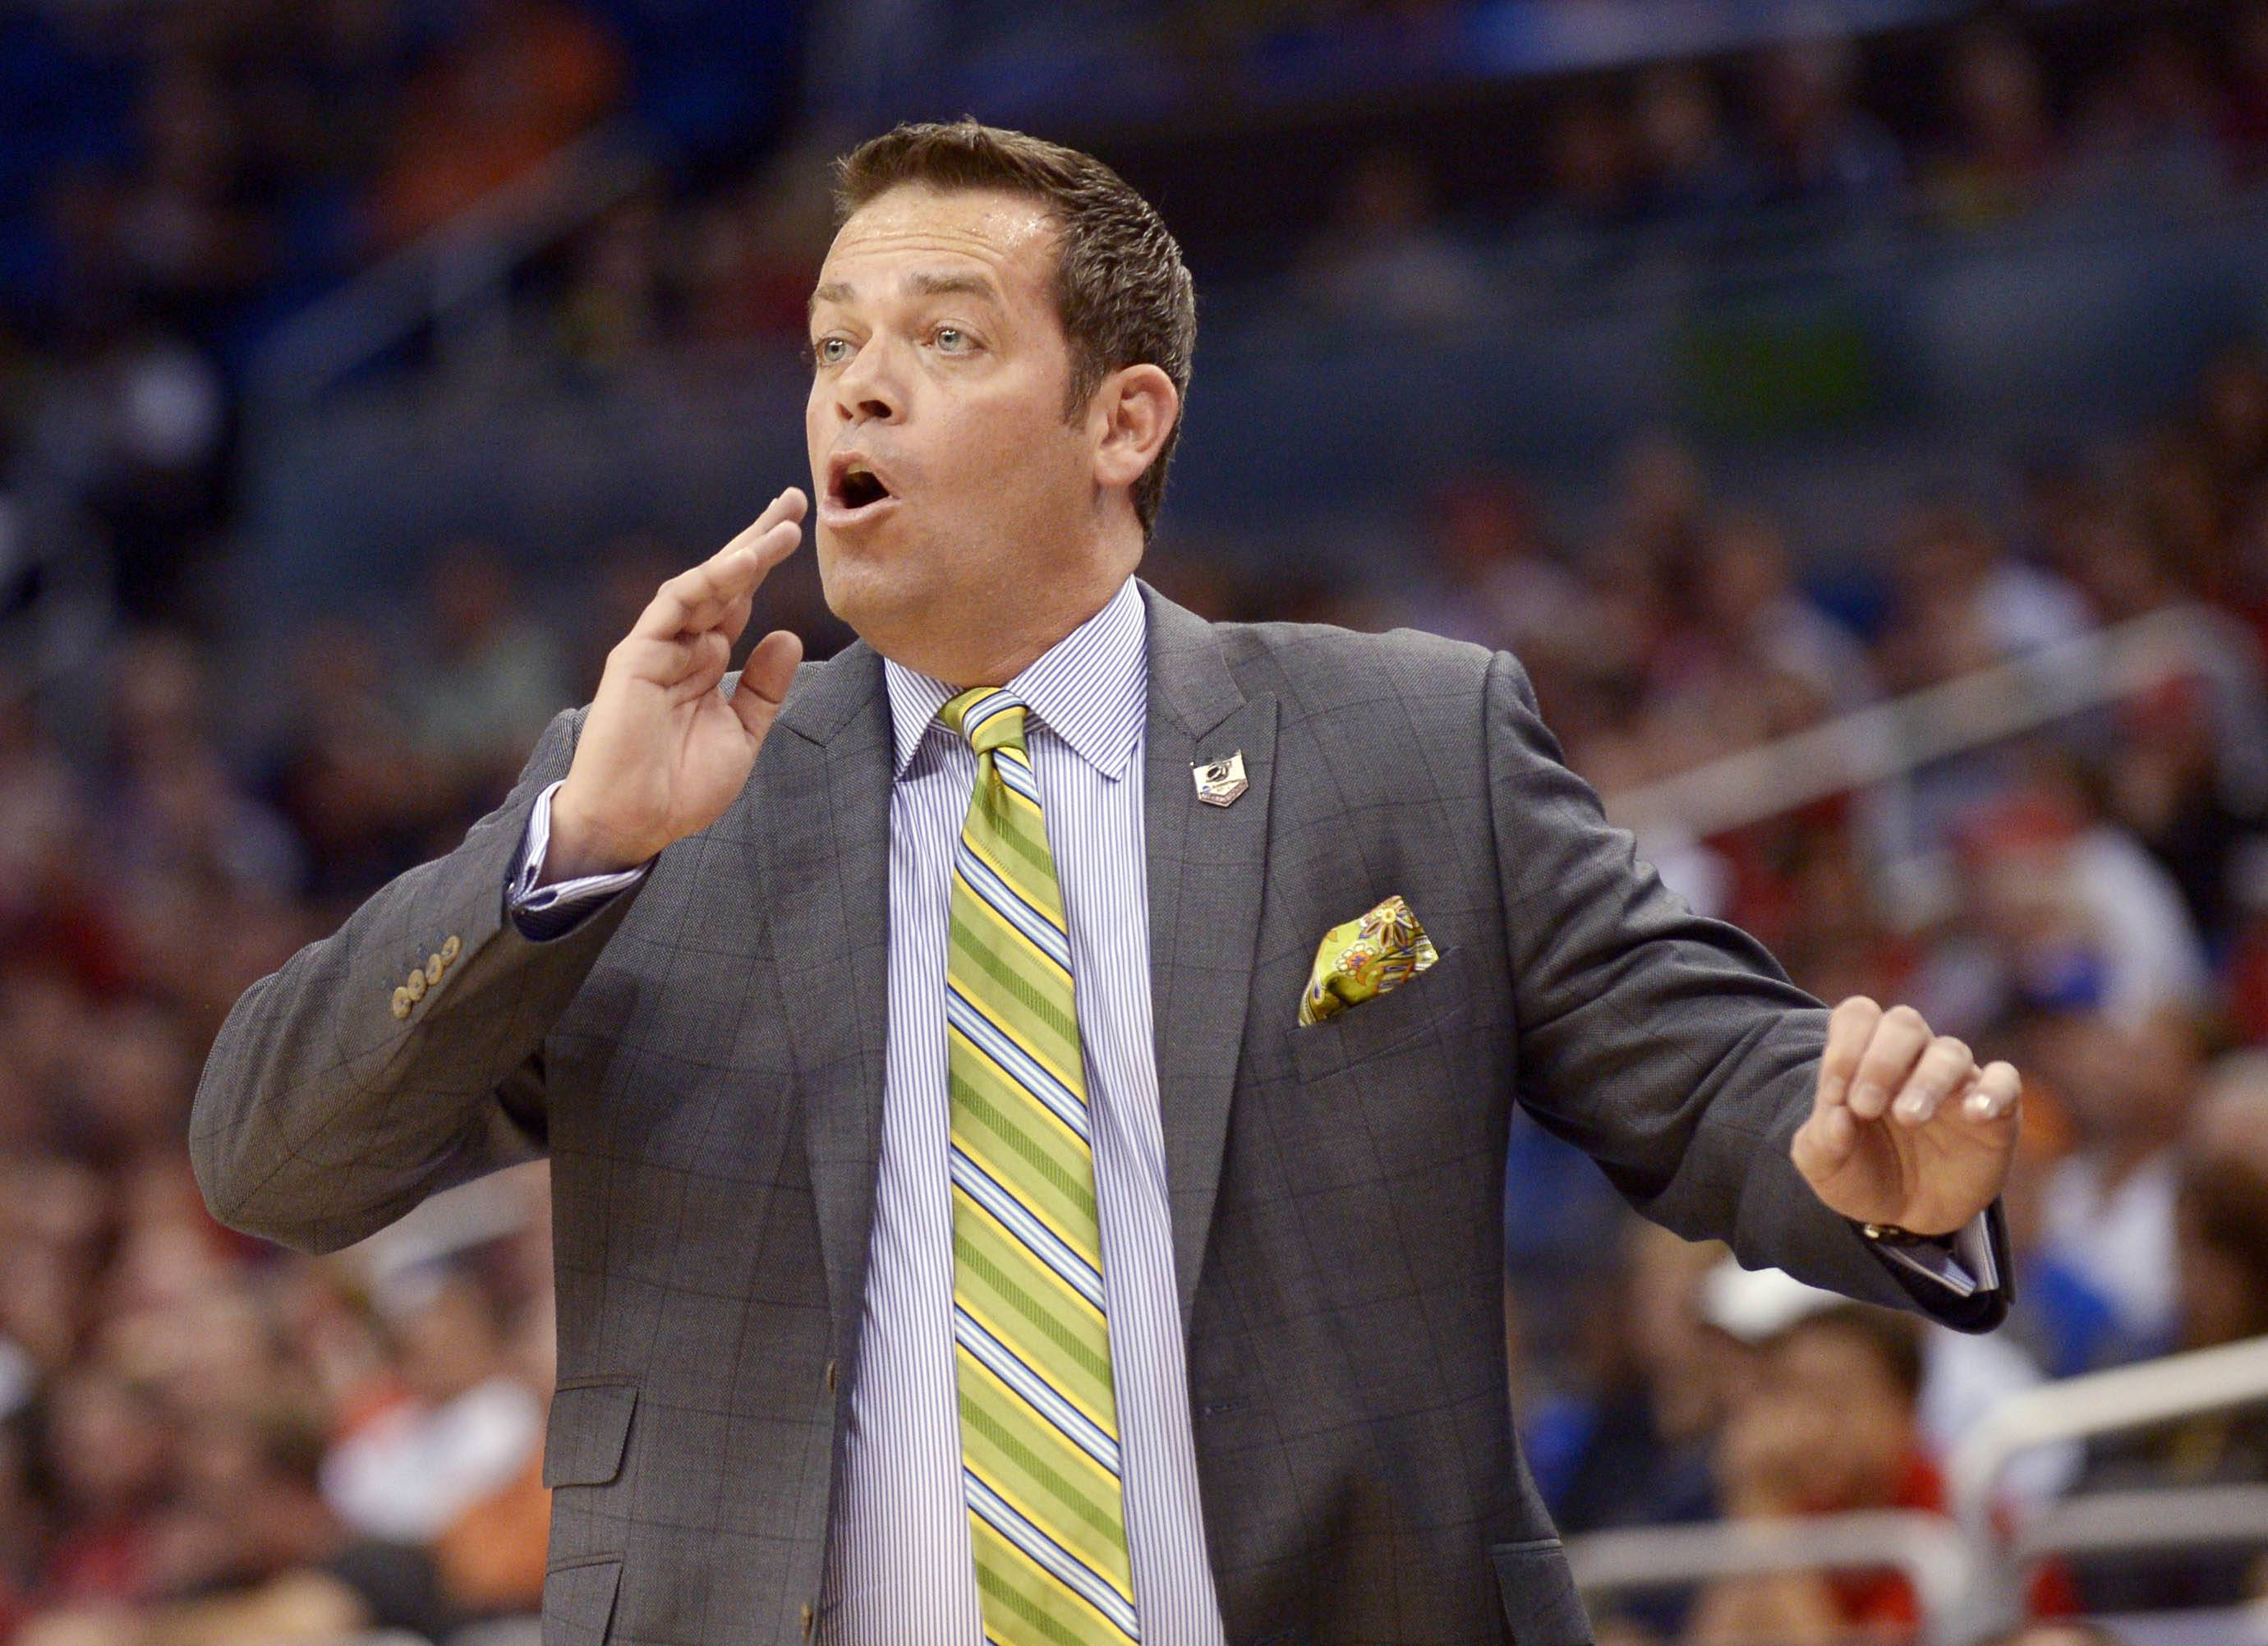 FILE - In this March 20, 2014, file photo, Manhattan coach Steve Masiello yells at his team during the first half against Louisville in a second-round game in the NCAA college basketball tournament in Orlando, Fla. South Florida's deal to hire Masiello as its new basketball coach falls apart because the rising young star doesn't have a college degree. (AP Photo/Phelan M. Ebenhack, File)